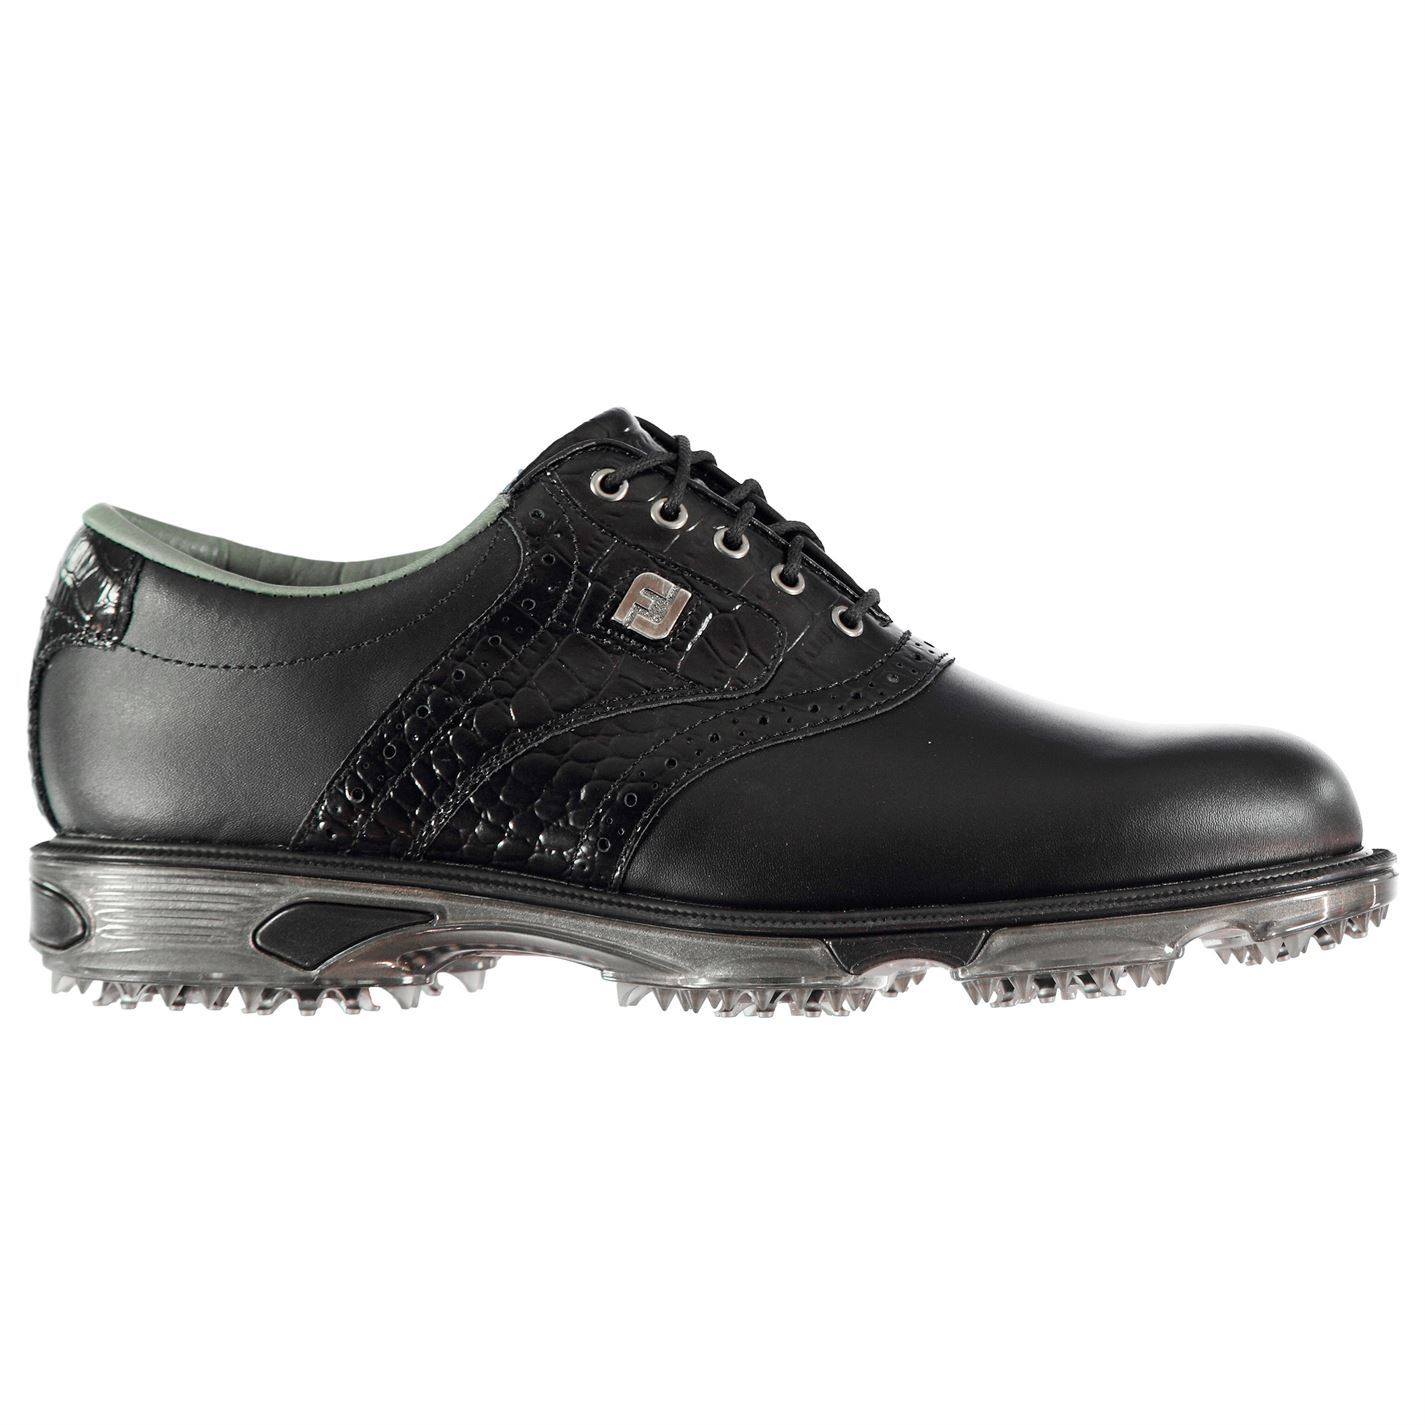 Footjoy-DryJoys-Tour-Golf-Shoes-Mens-Spikes-Footwear thumbnail 4